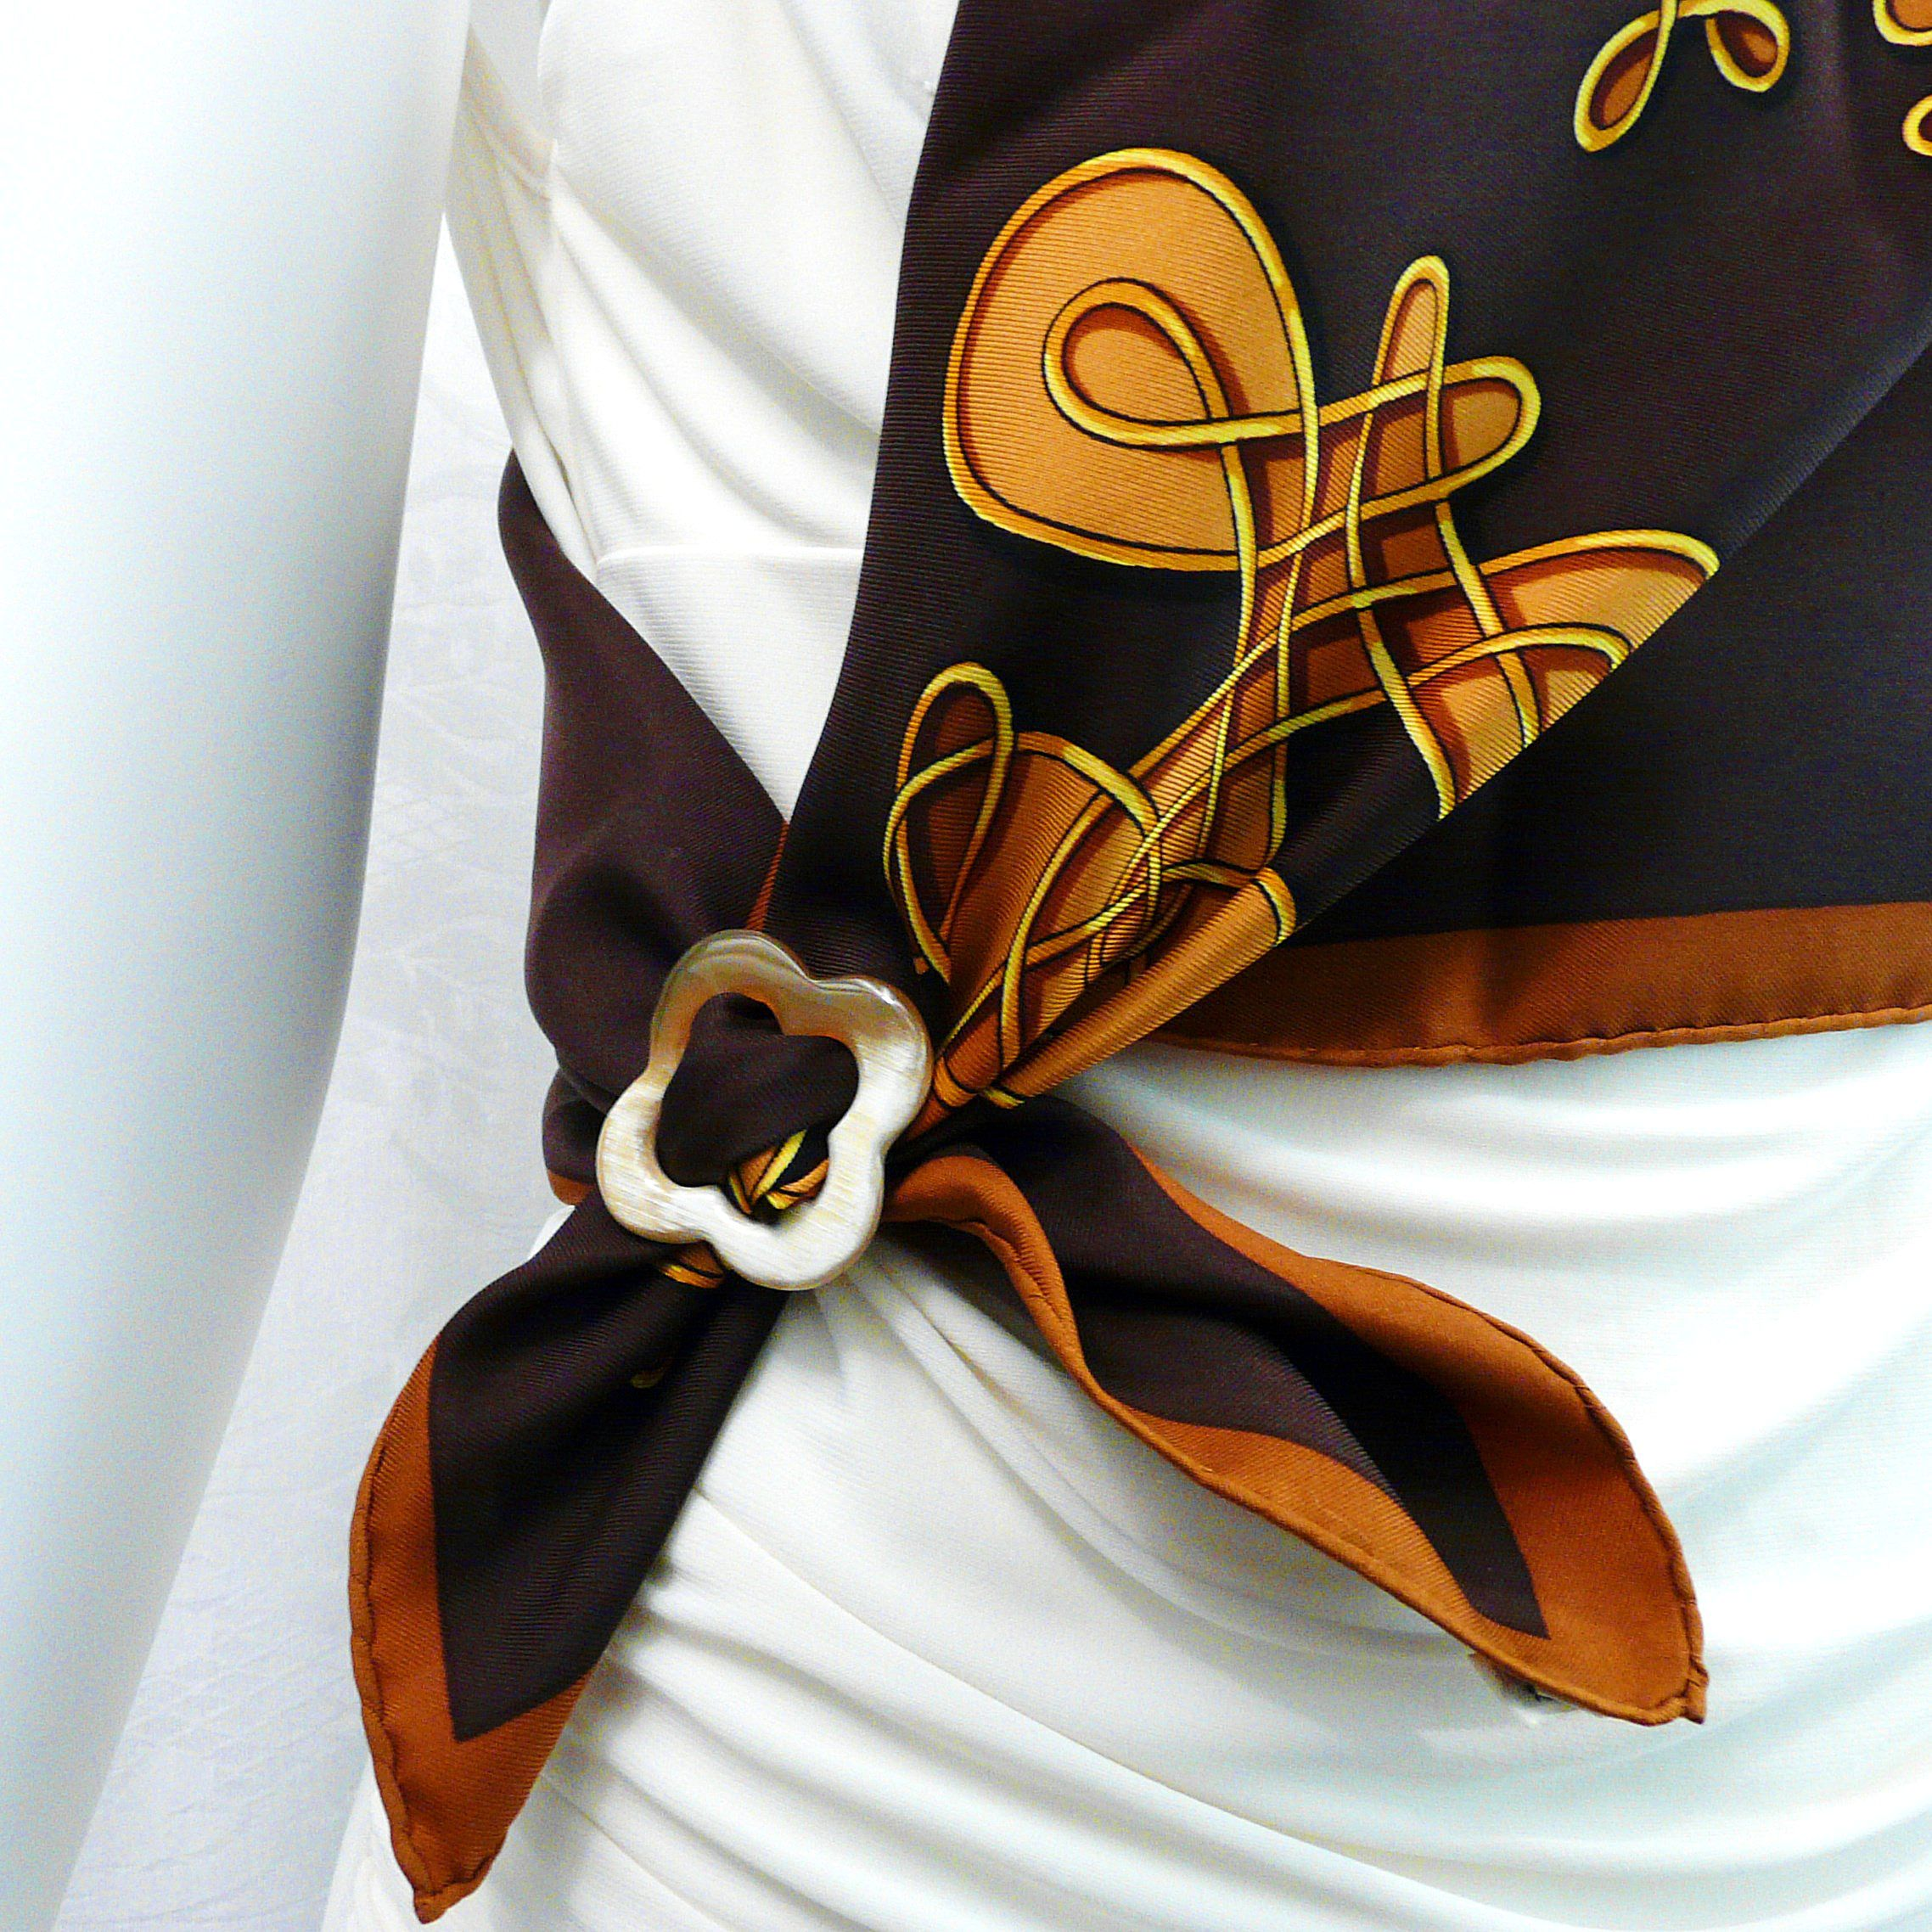 Vinci HERMES with Anneau de Luxe Horn Scarf Ring Carre de Paris Close Up